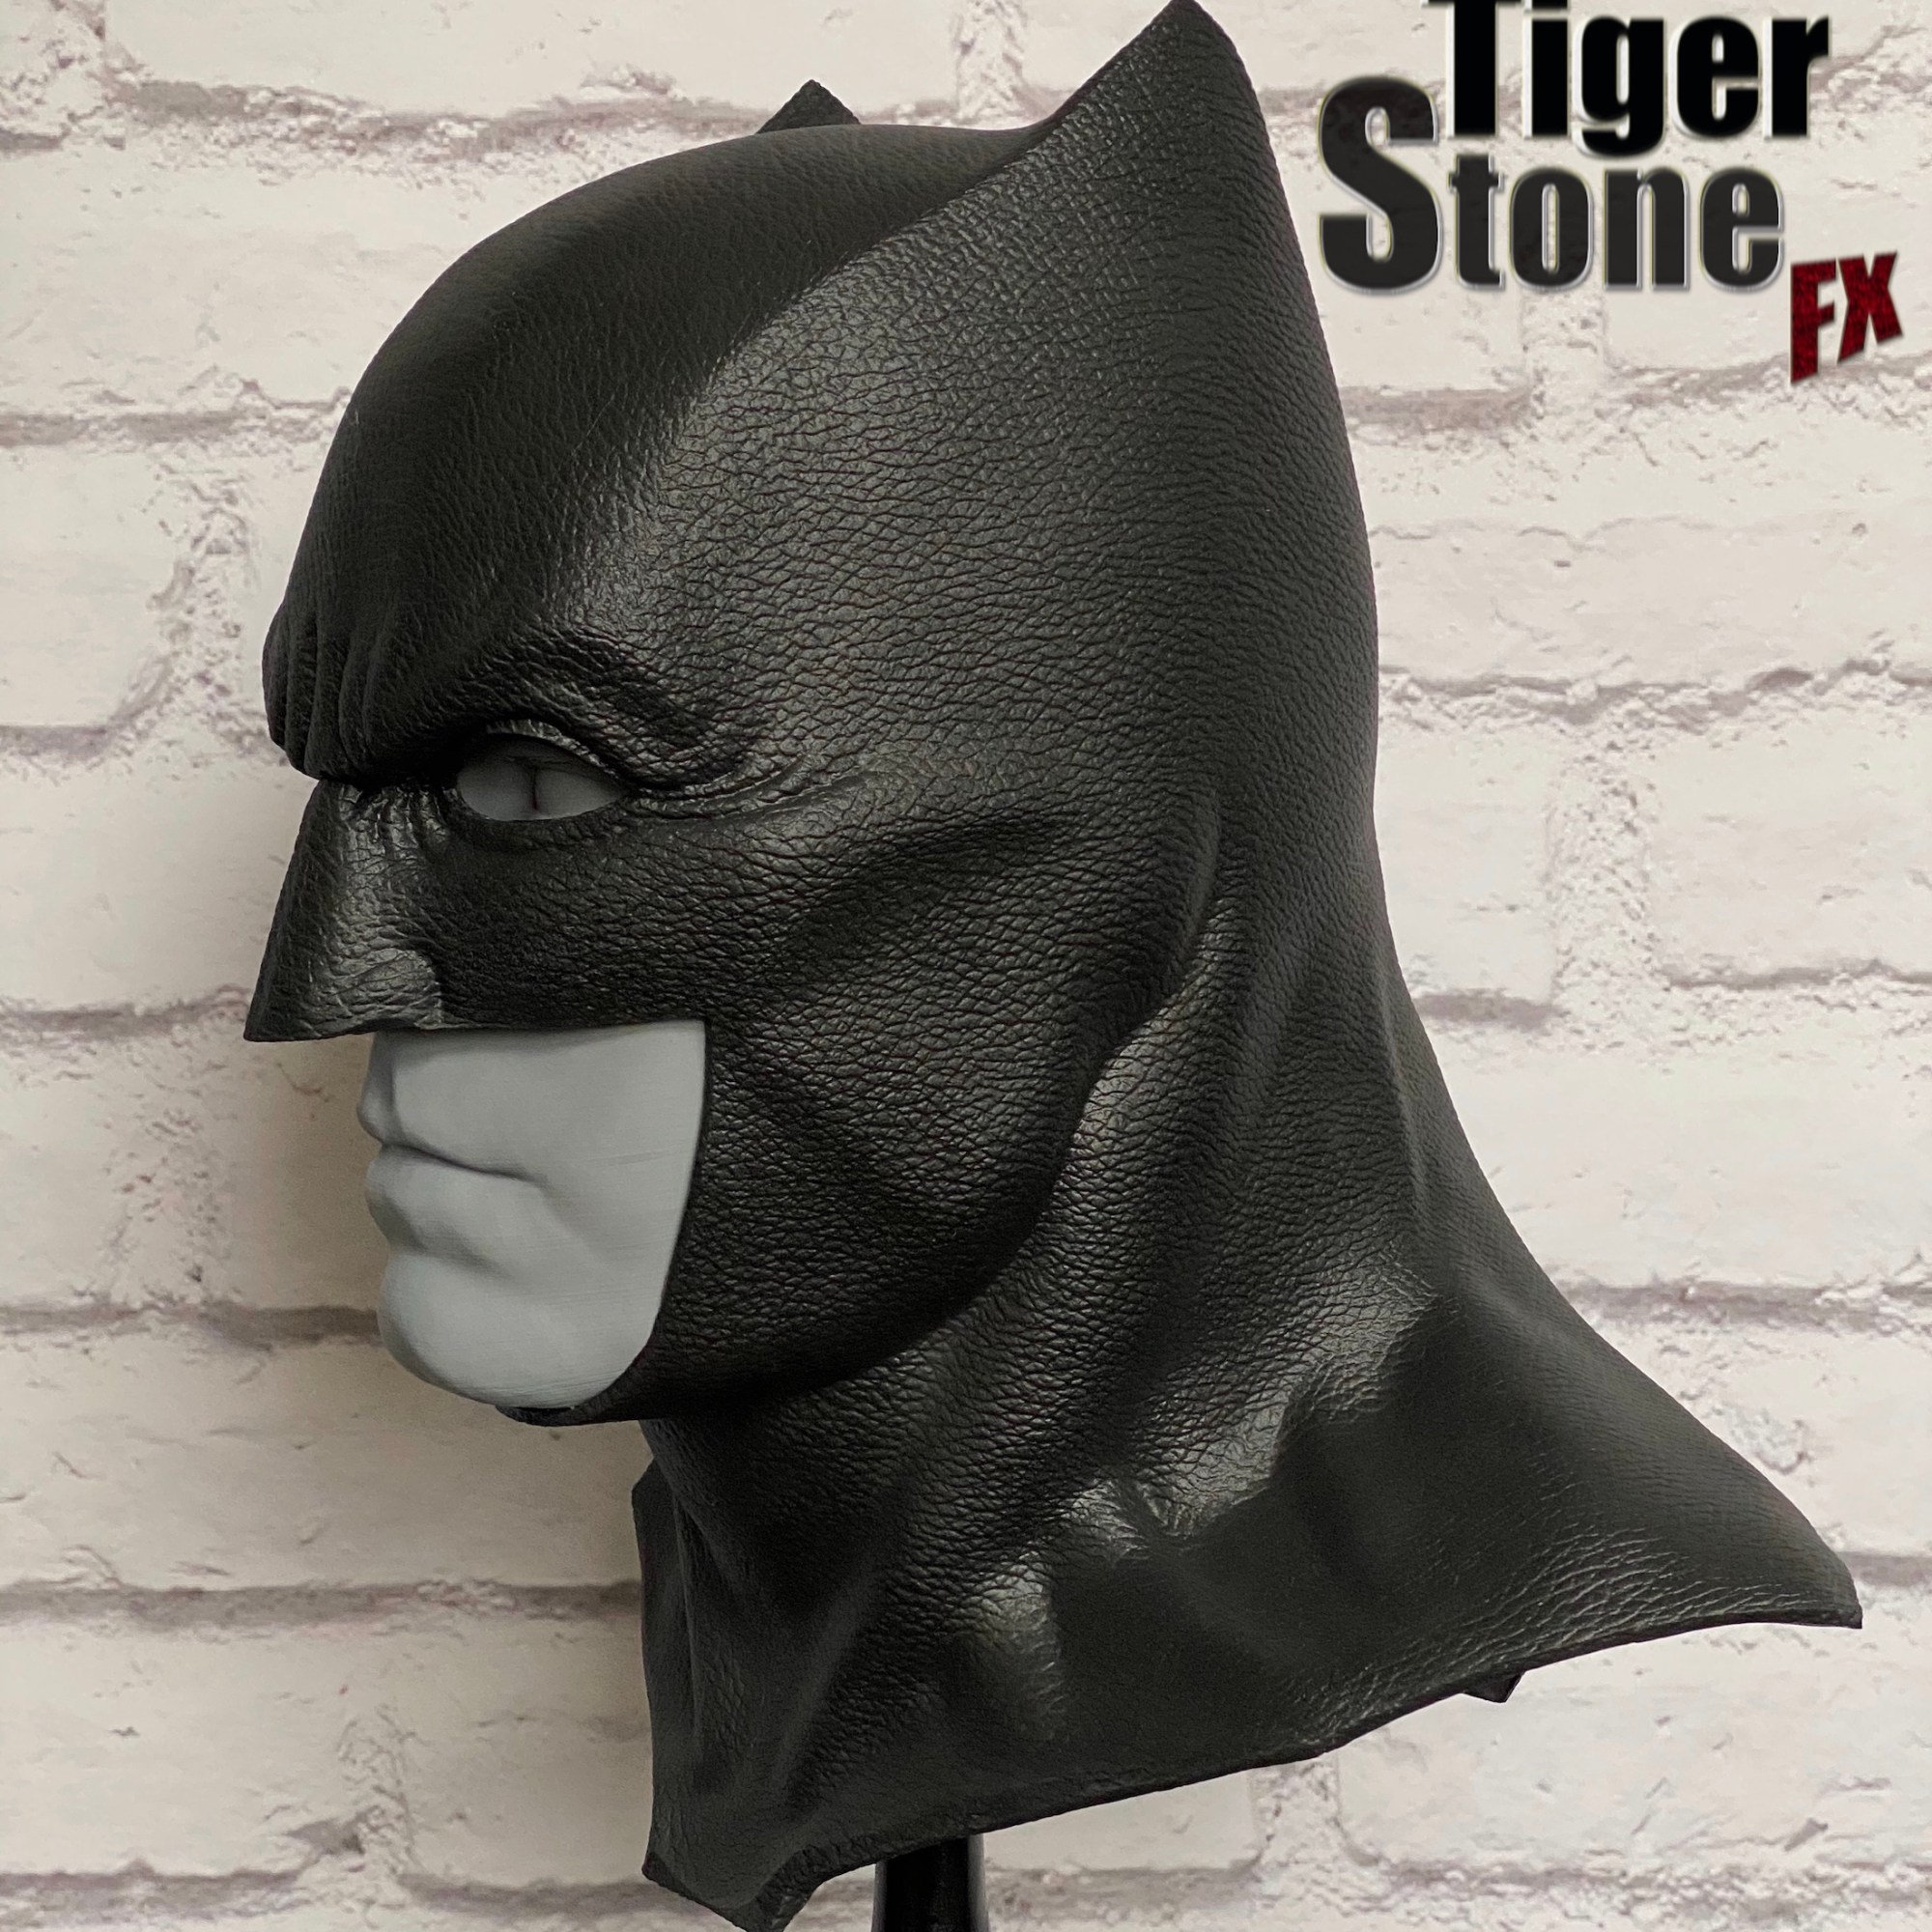 Justice League Batman cowl (left profile) - handmade by Tiger Stone FX